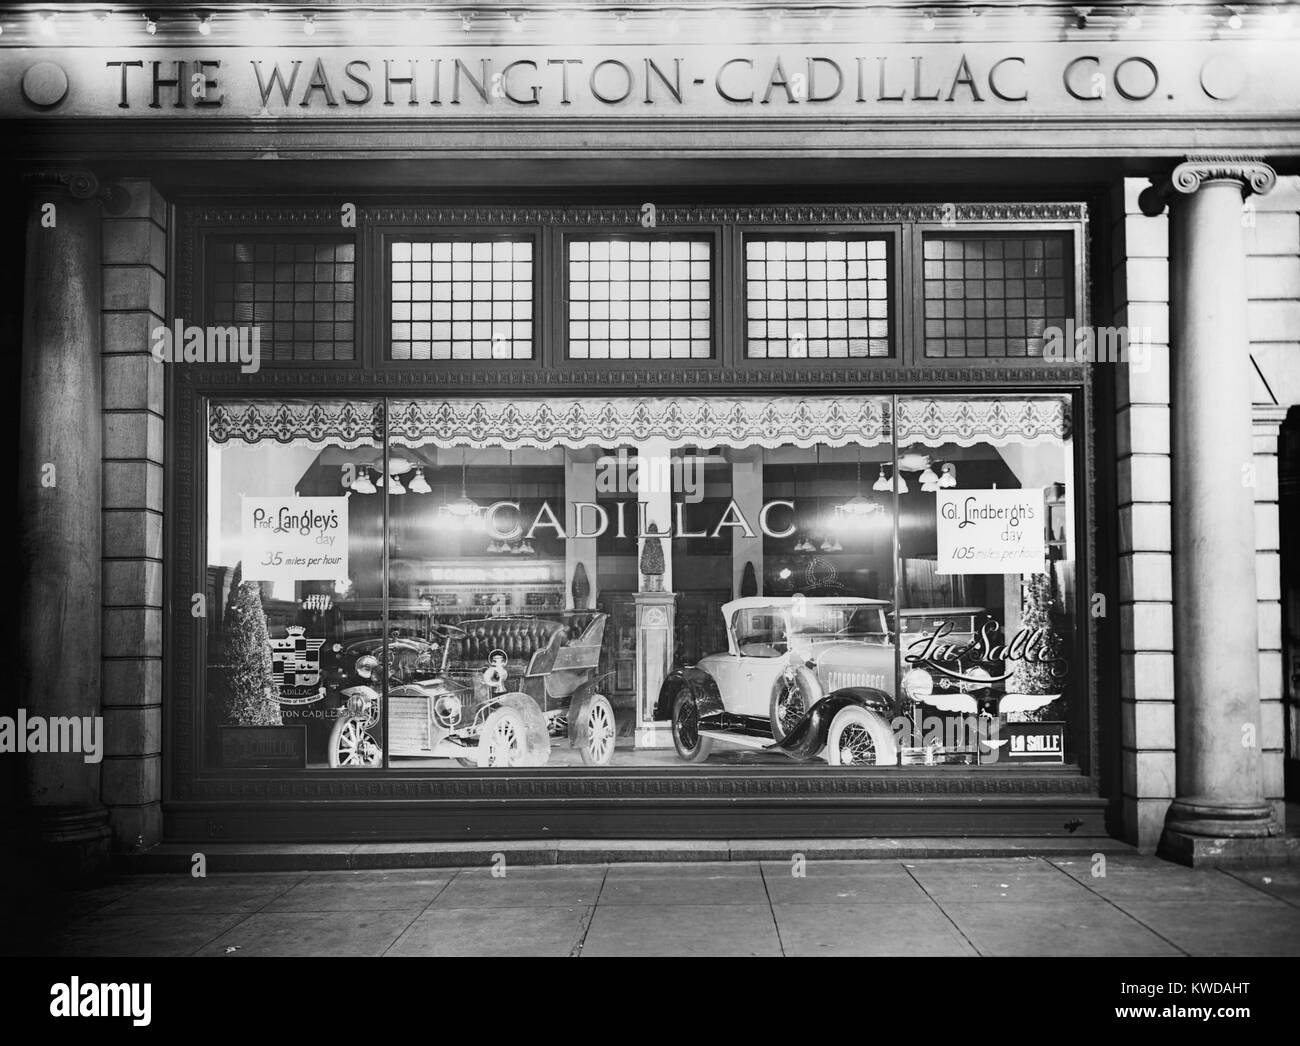 1927 Cadillac LaSalle (right) shares the showroom window with a vintage model. The Washington, D.C. dealership window - Stock Image